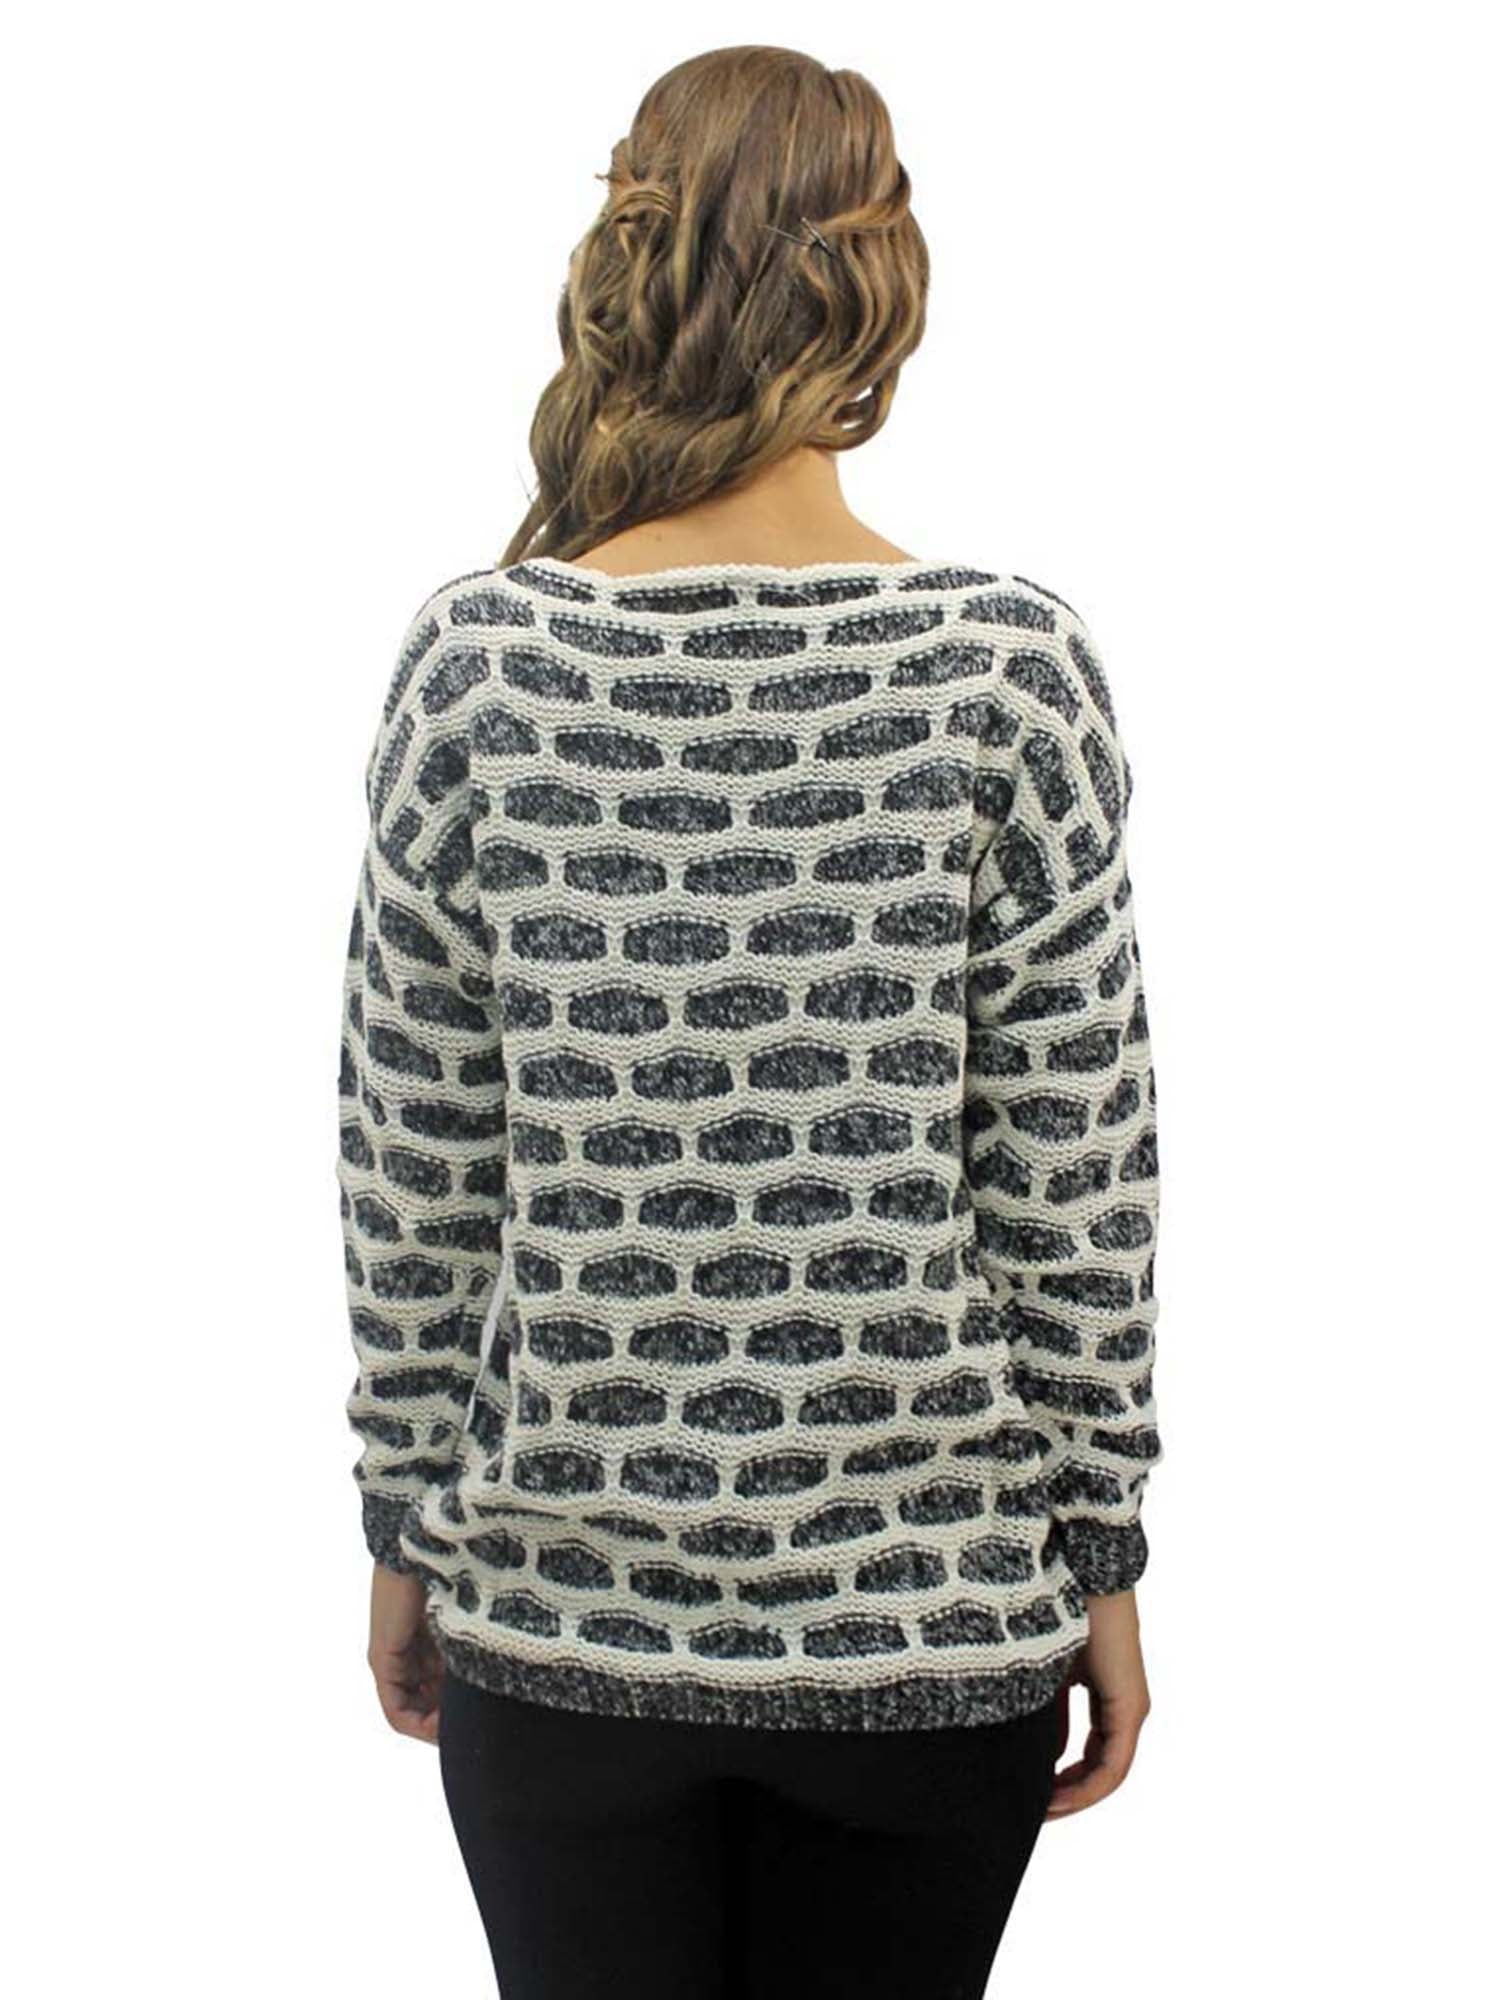 Black & White Brick Pattern Knit Sweater